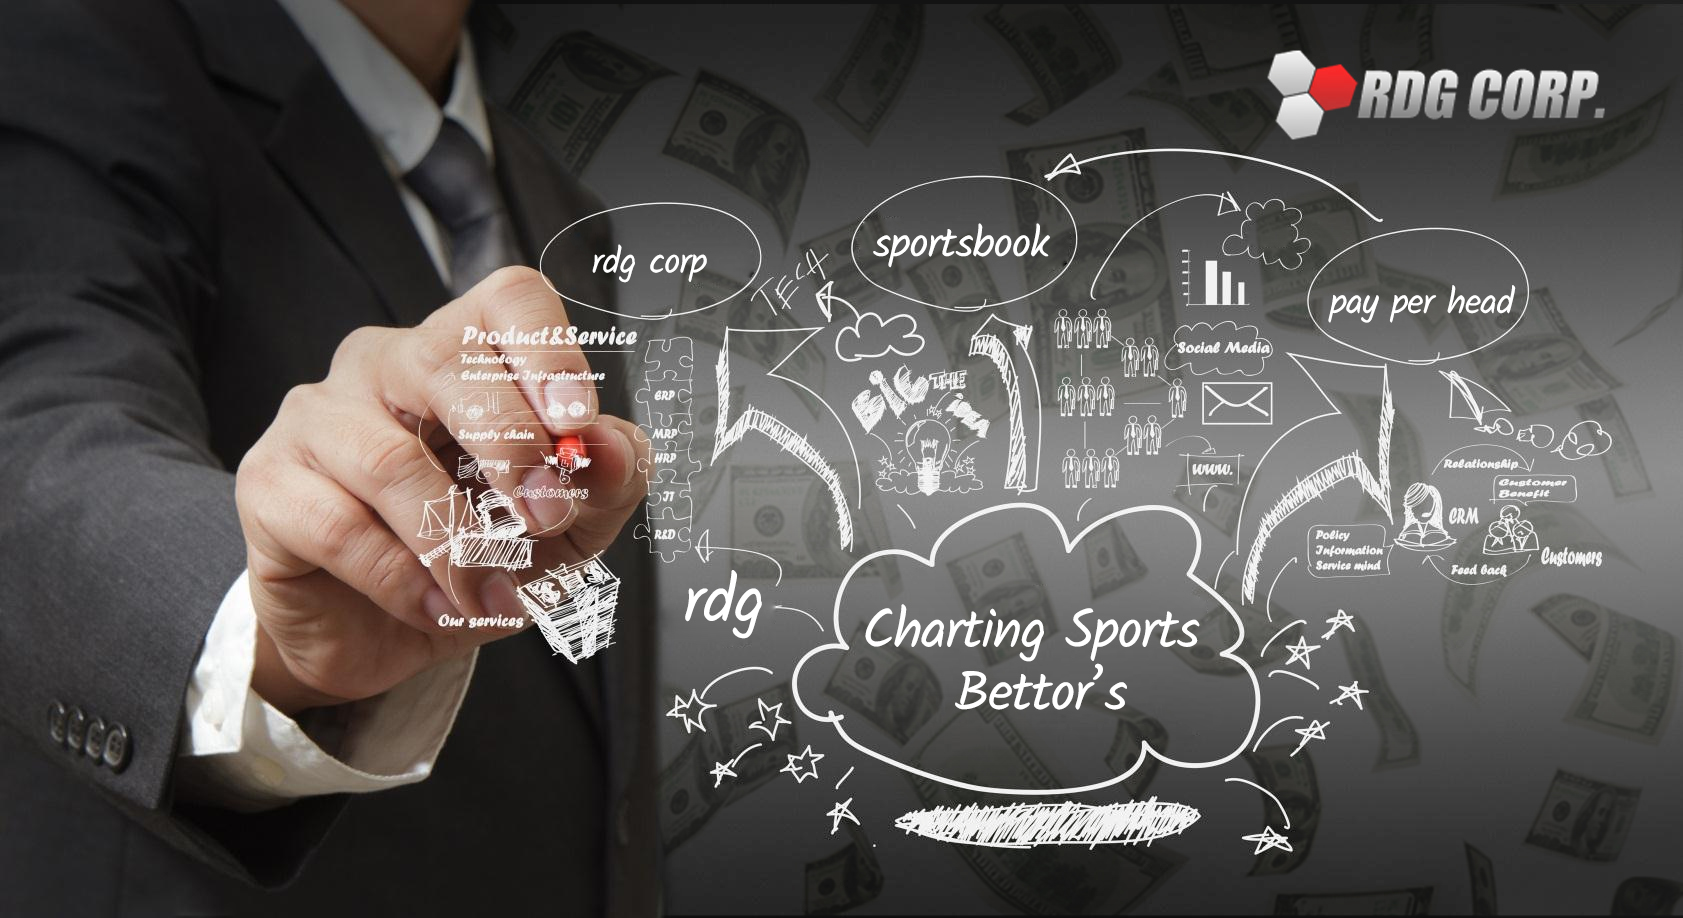 Charting Sports Bettor's Habits with Pay Per Head